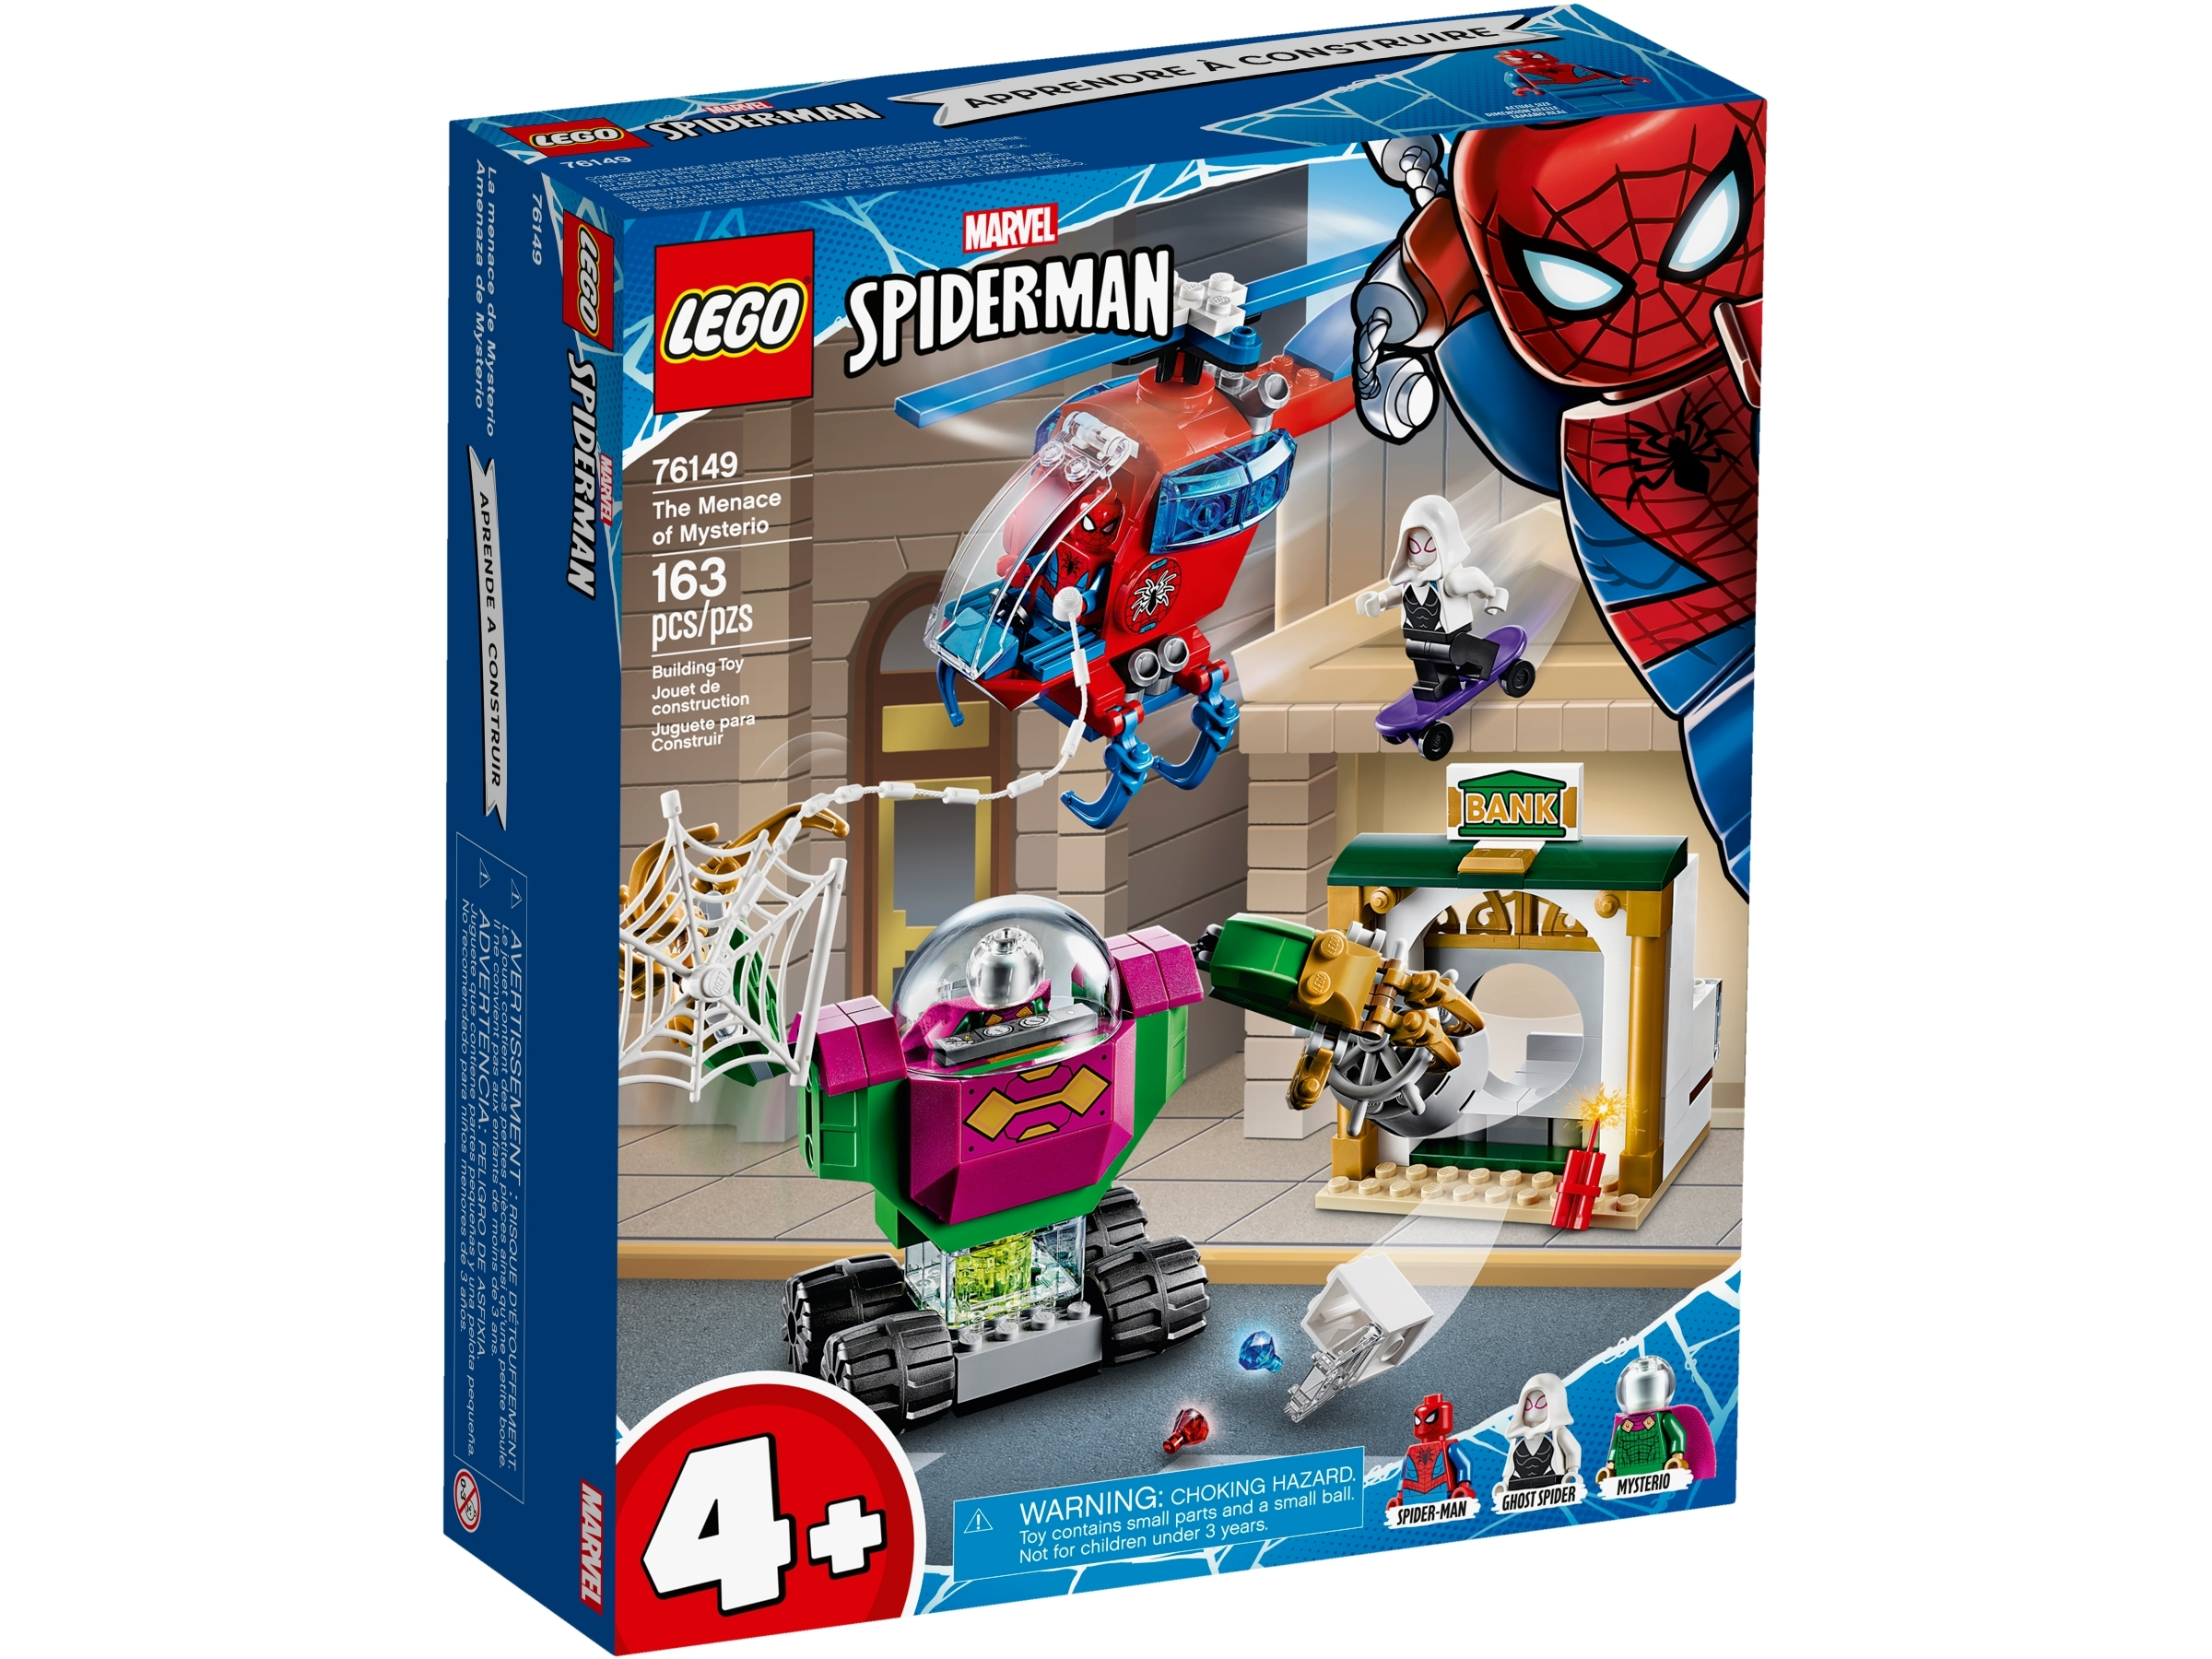 Lego 76149 Marvel Super Heroes The Menace of Mysterio Spiderman